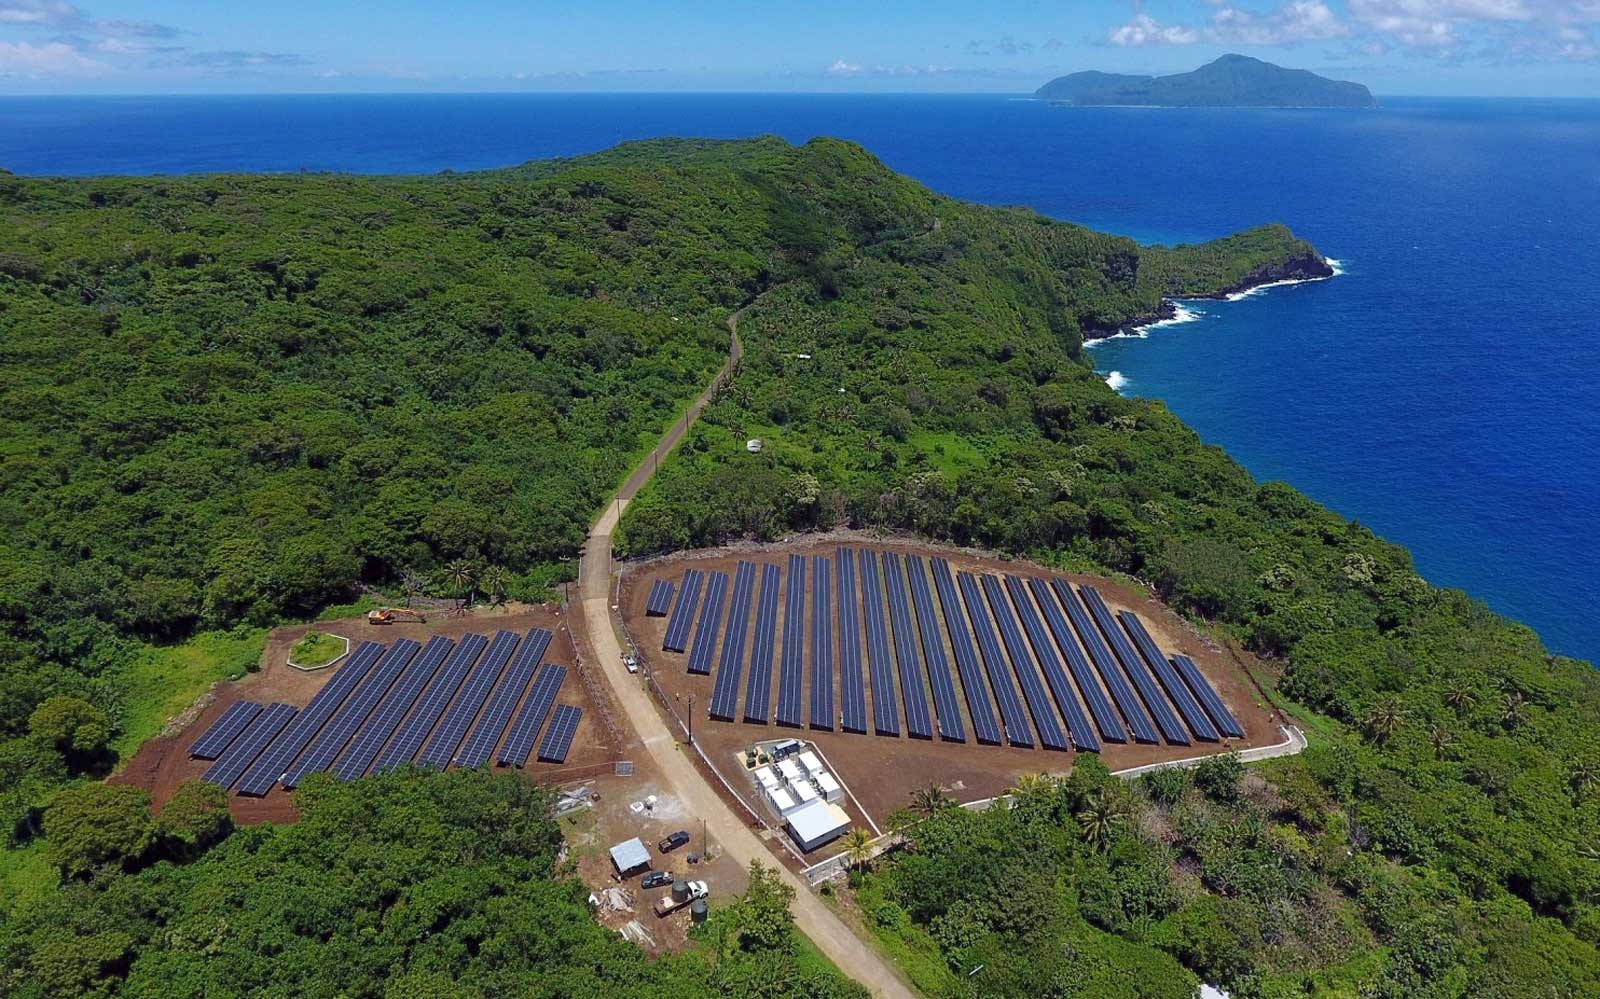 This Remote Island Is Completely Powered by Solar Energy